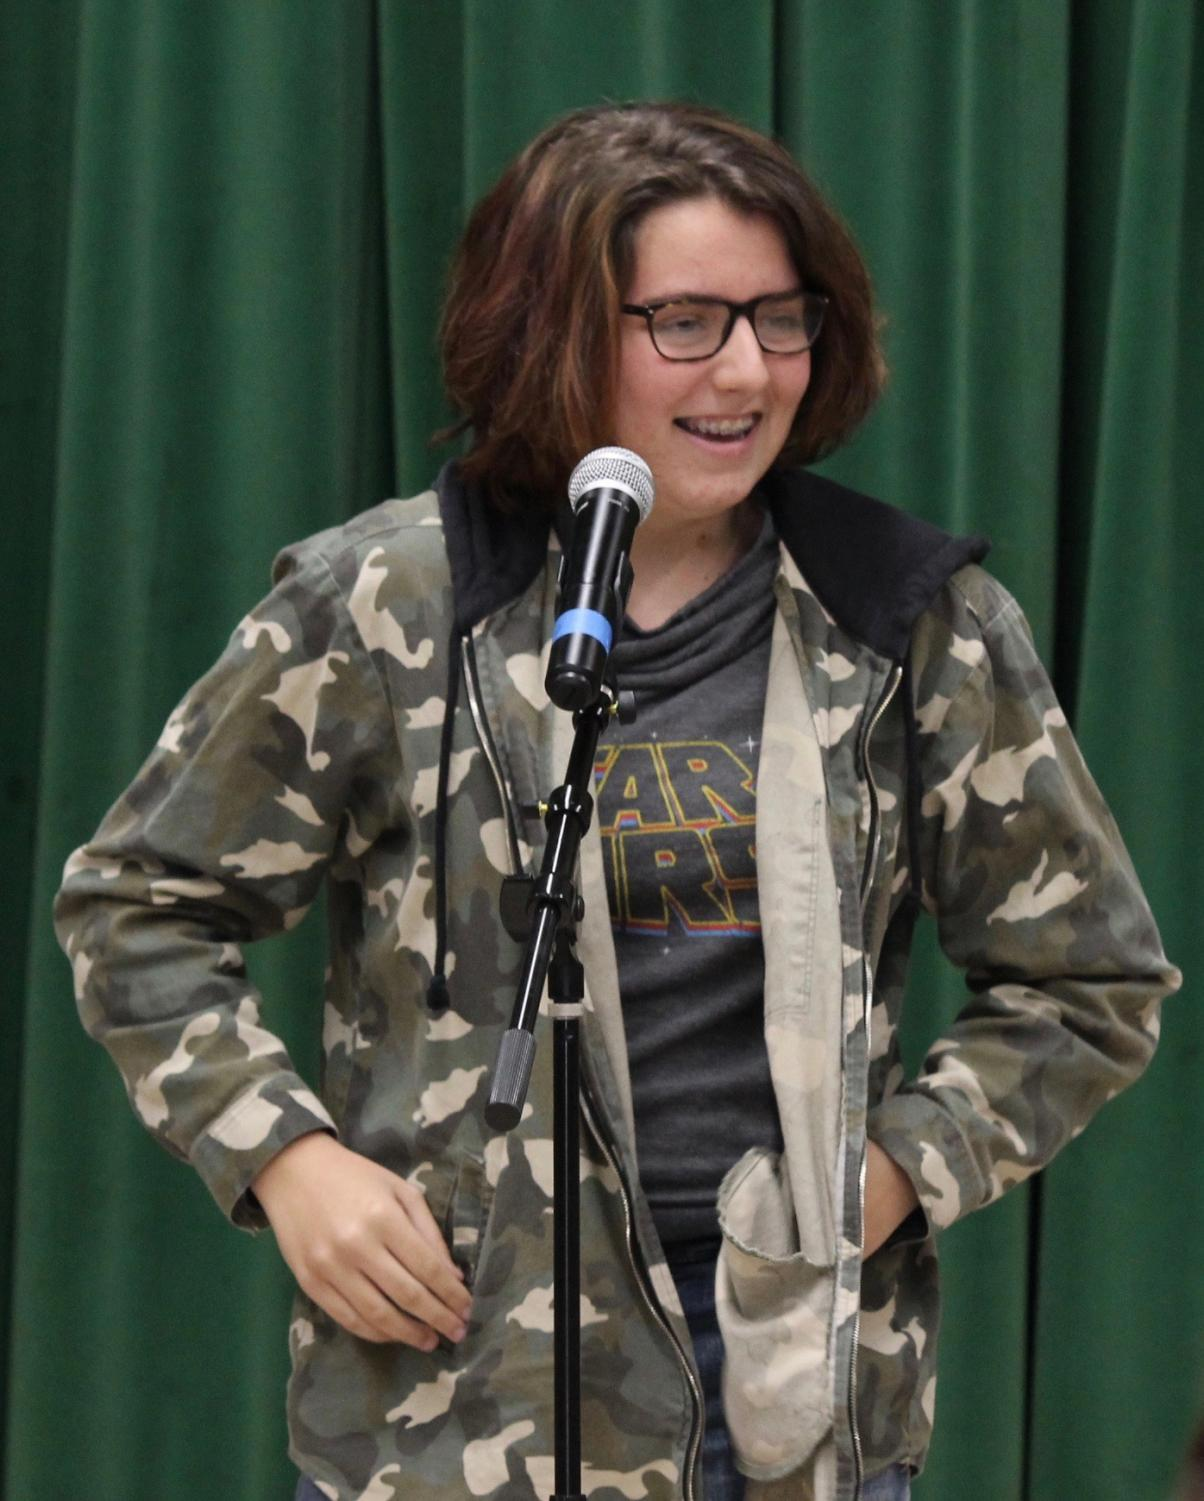 Sophomore+Stephanie+Pynes+shares+her+own+poem+at+the+Get+Lit%21+assembly+on+Nov.+15.